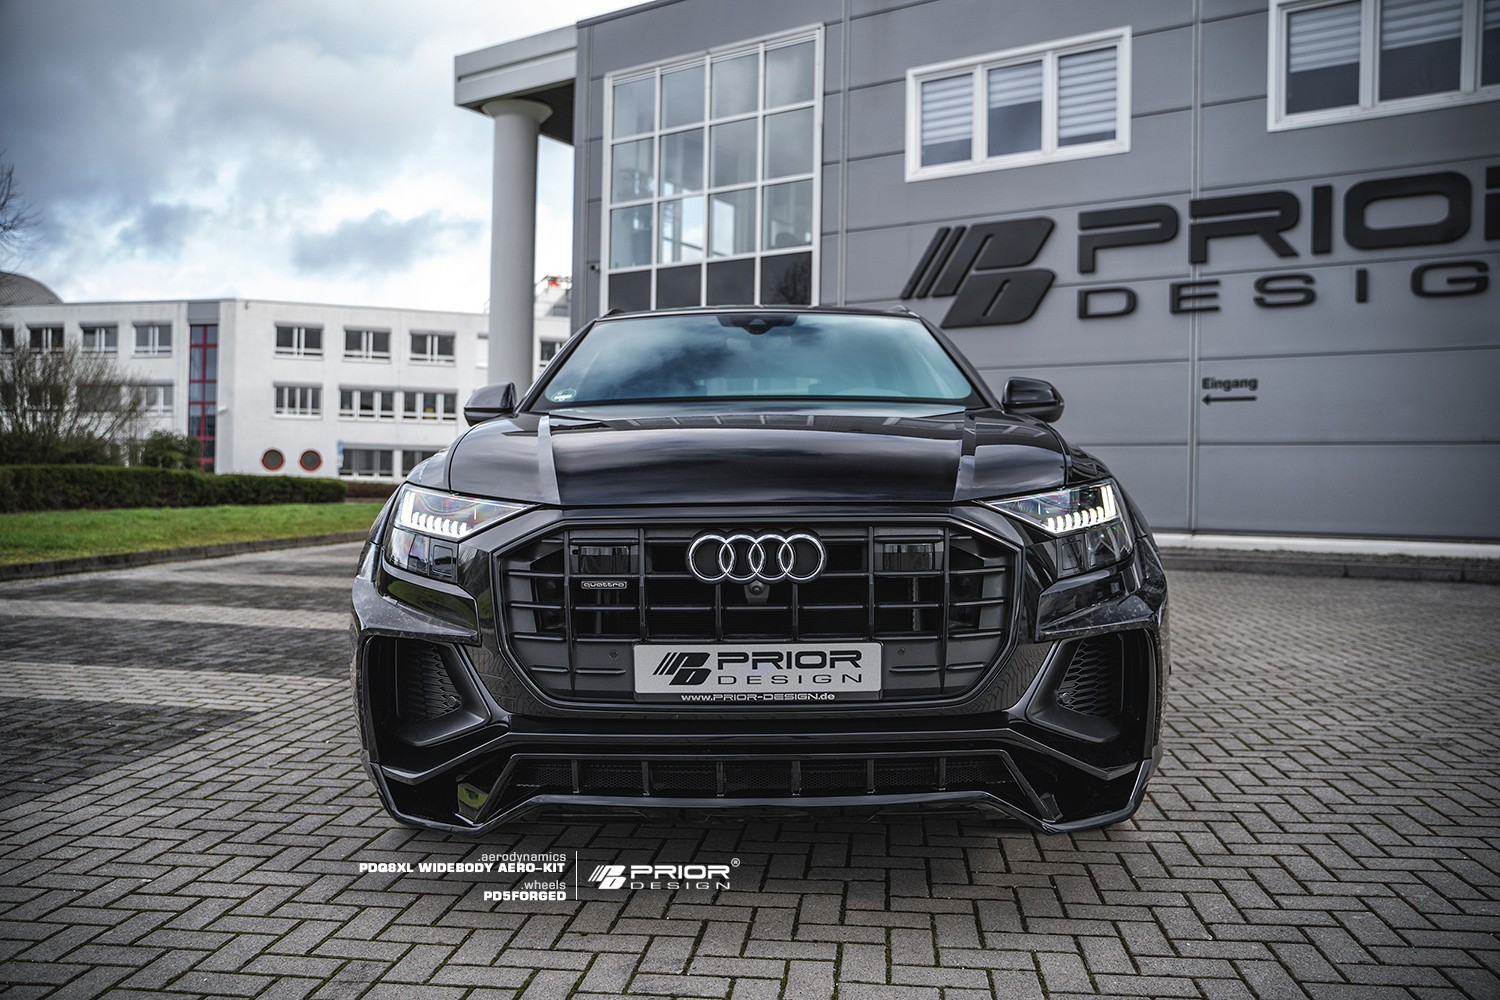 Audi-Q8-PDQ8XL-by-Prior-Design-8